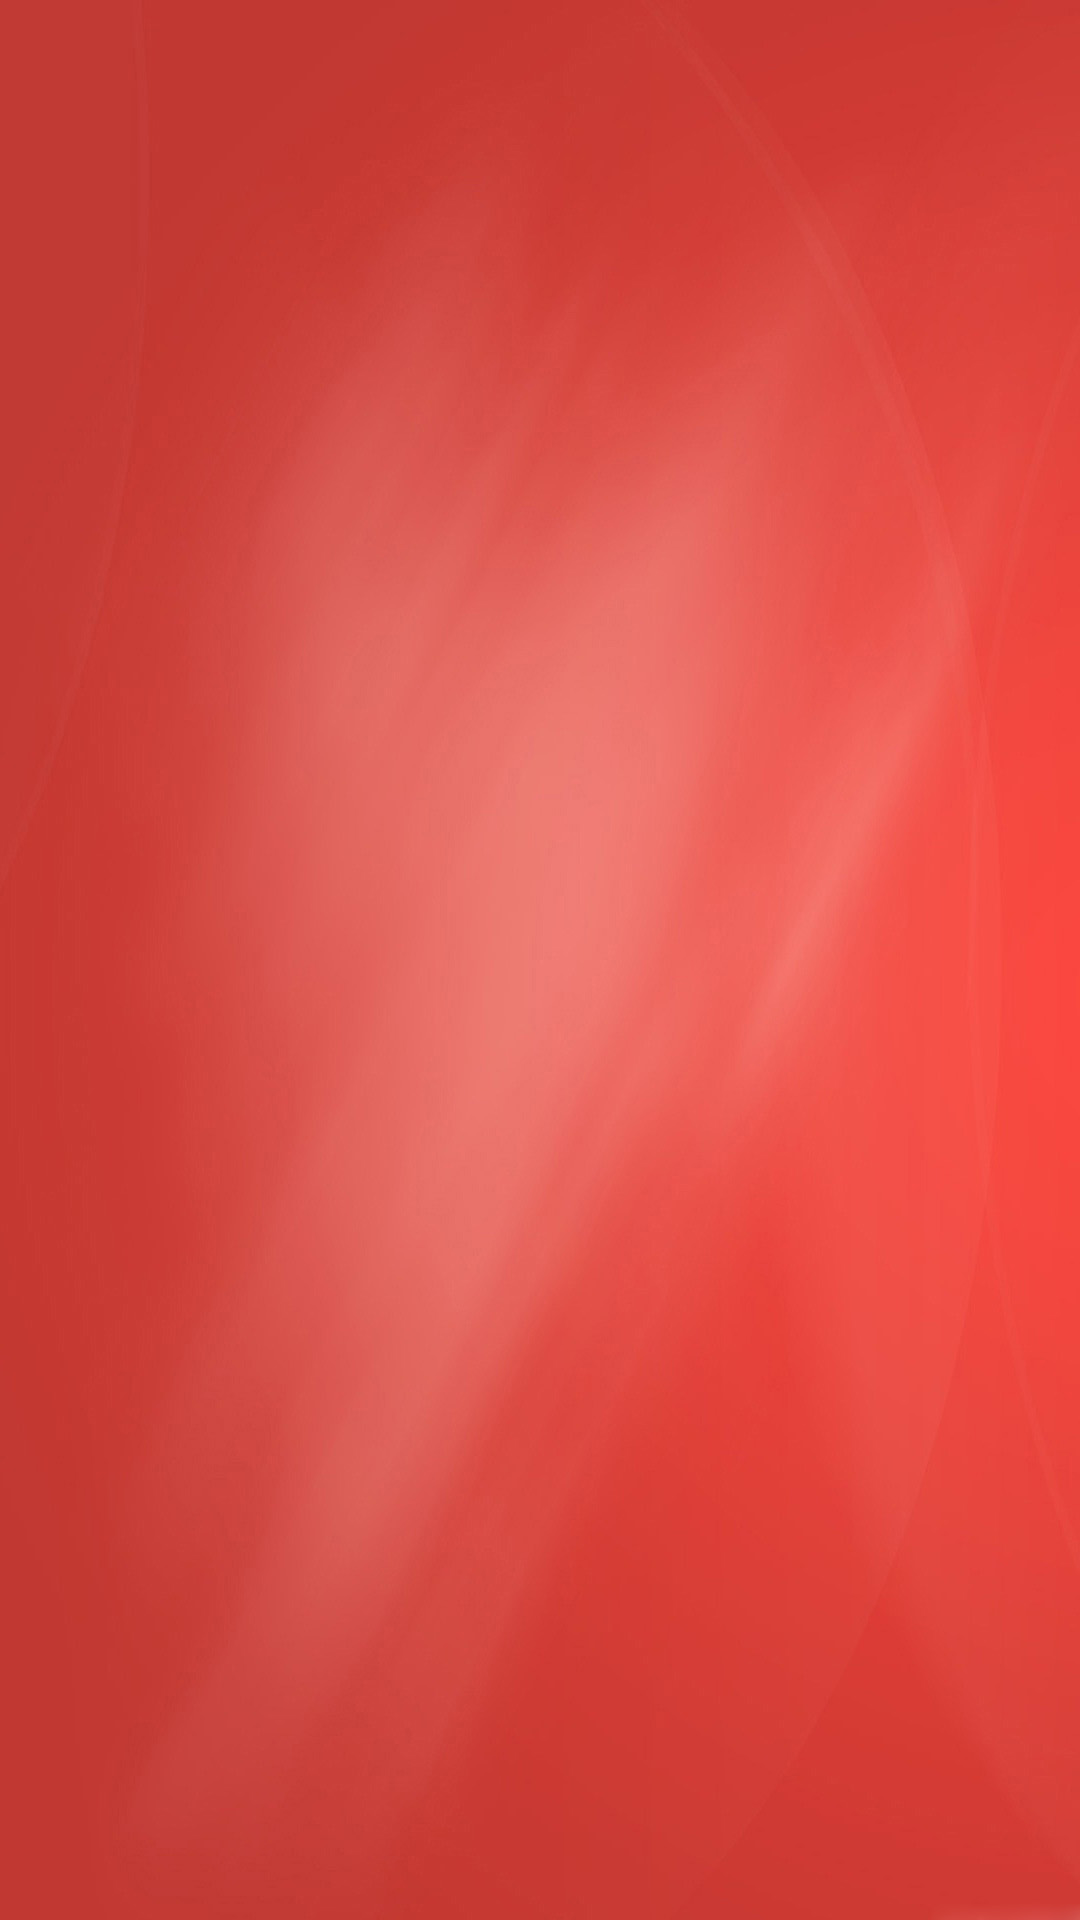 Simple Red Angled Gradient